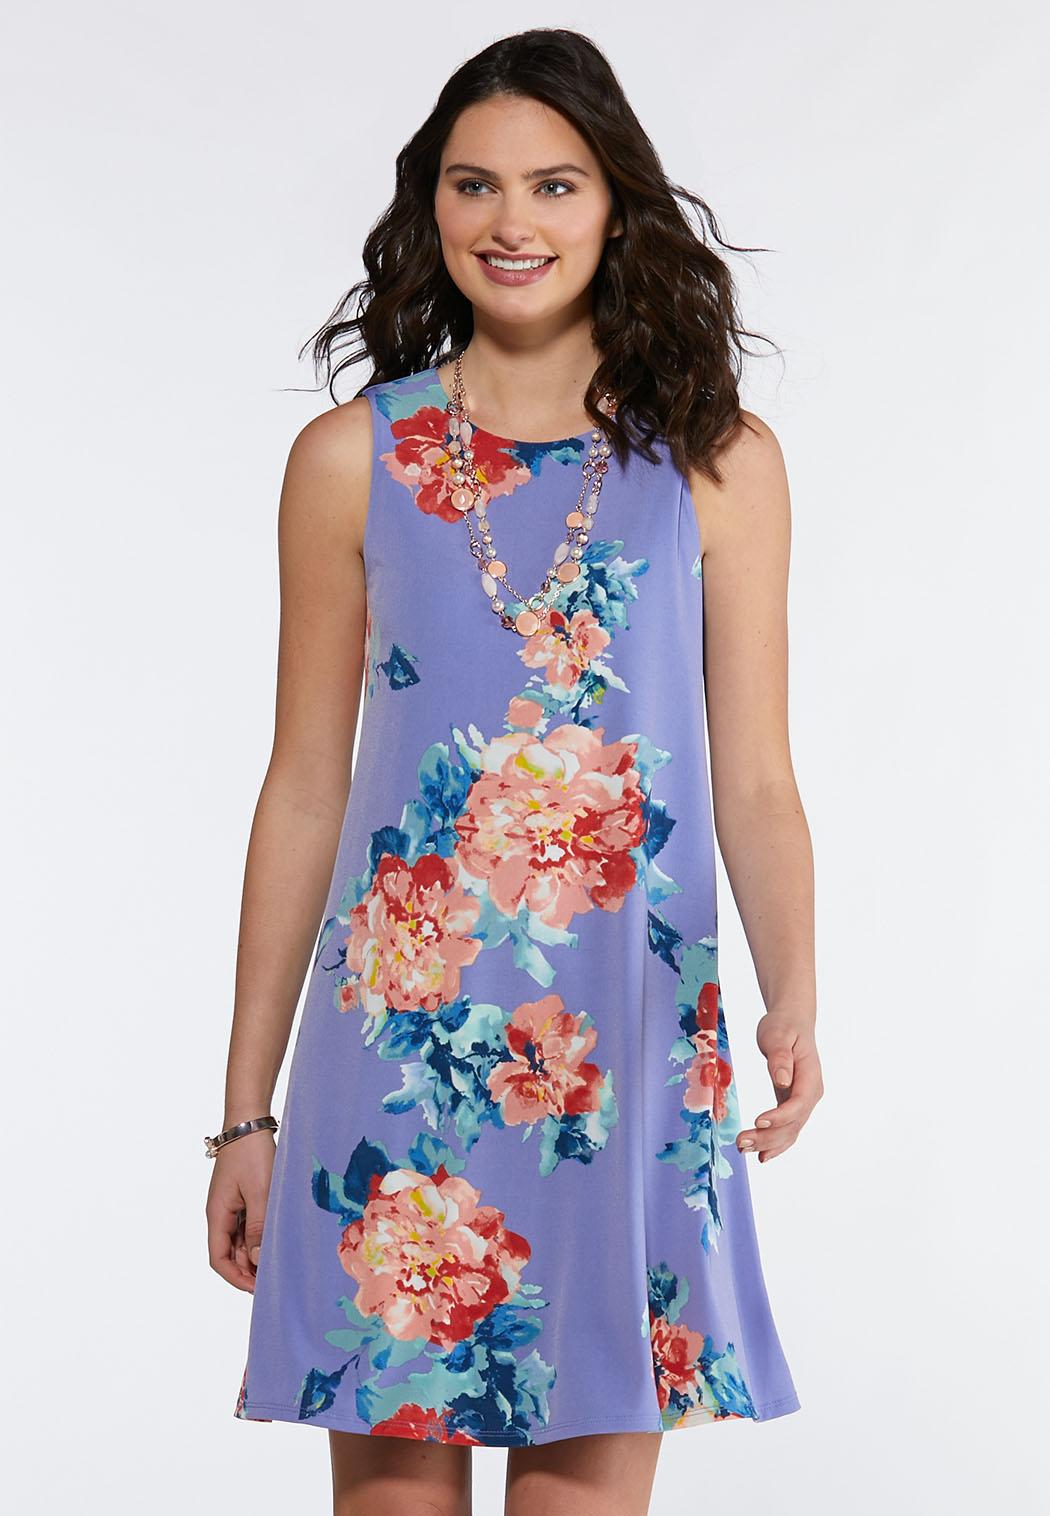 fc3c51976f232 Blue Floral Swing Dress A-line   Swing Cato Fashions